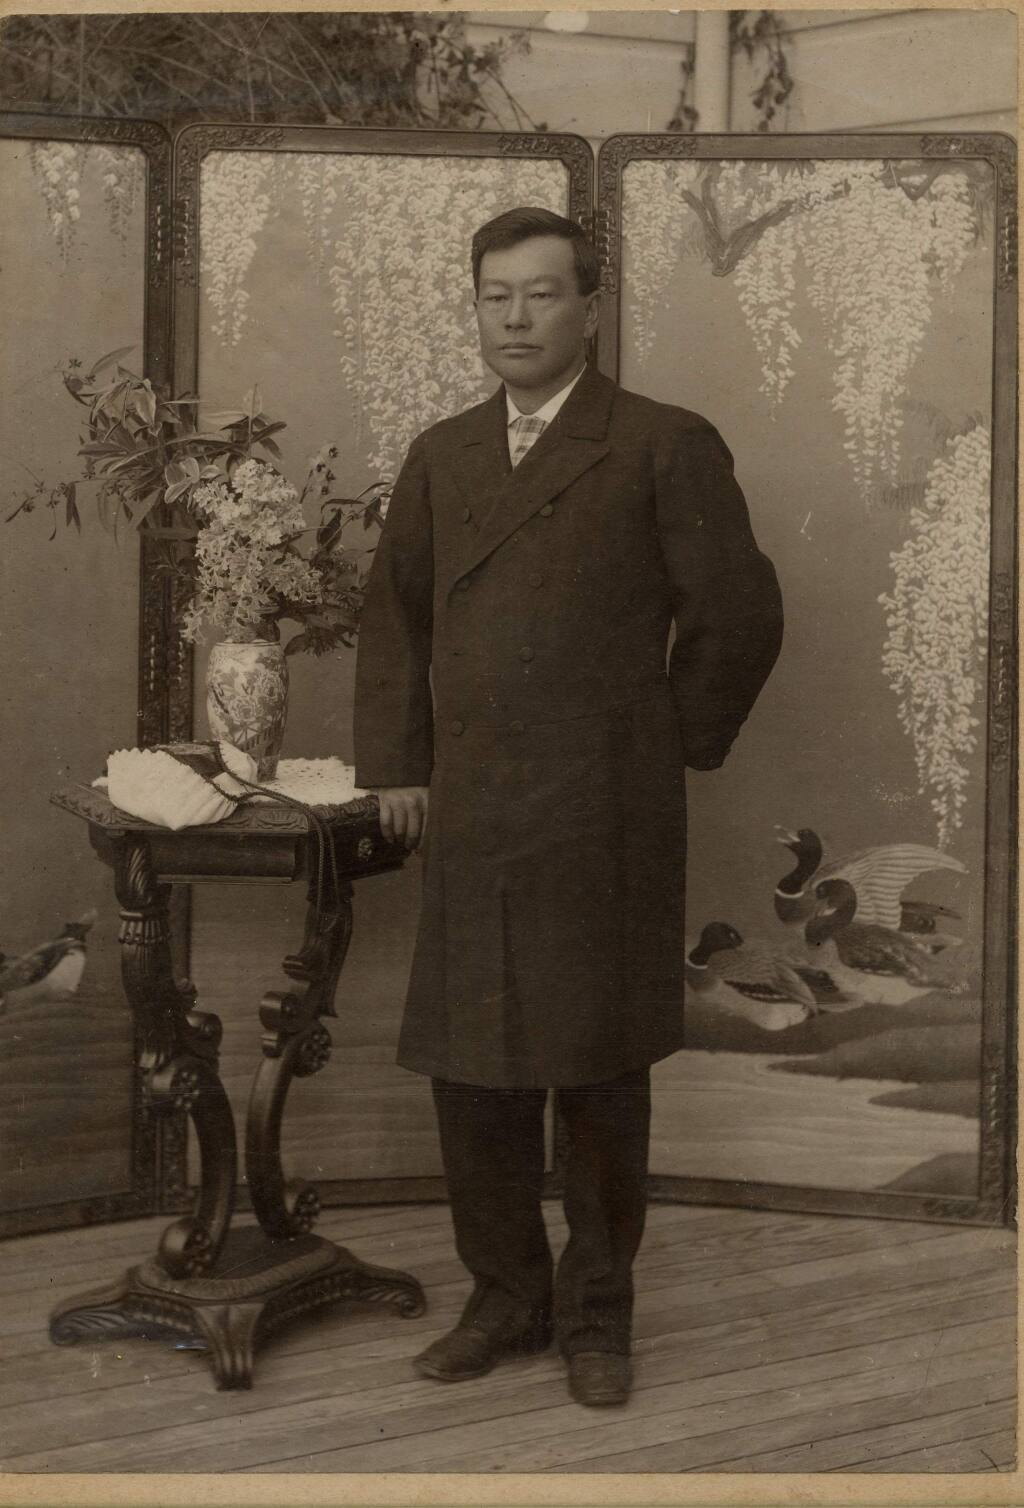 Although supported locally and by the community residents, in 1892 Harris left Fountaingrove, and deeded the property to his adopted son, Kanaye Nagasawa. (Courtesy of the Sonoma County Museum)